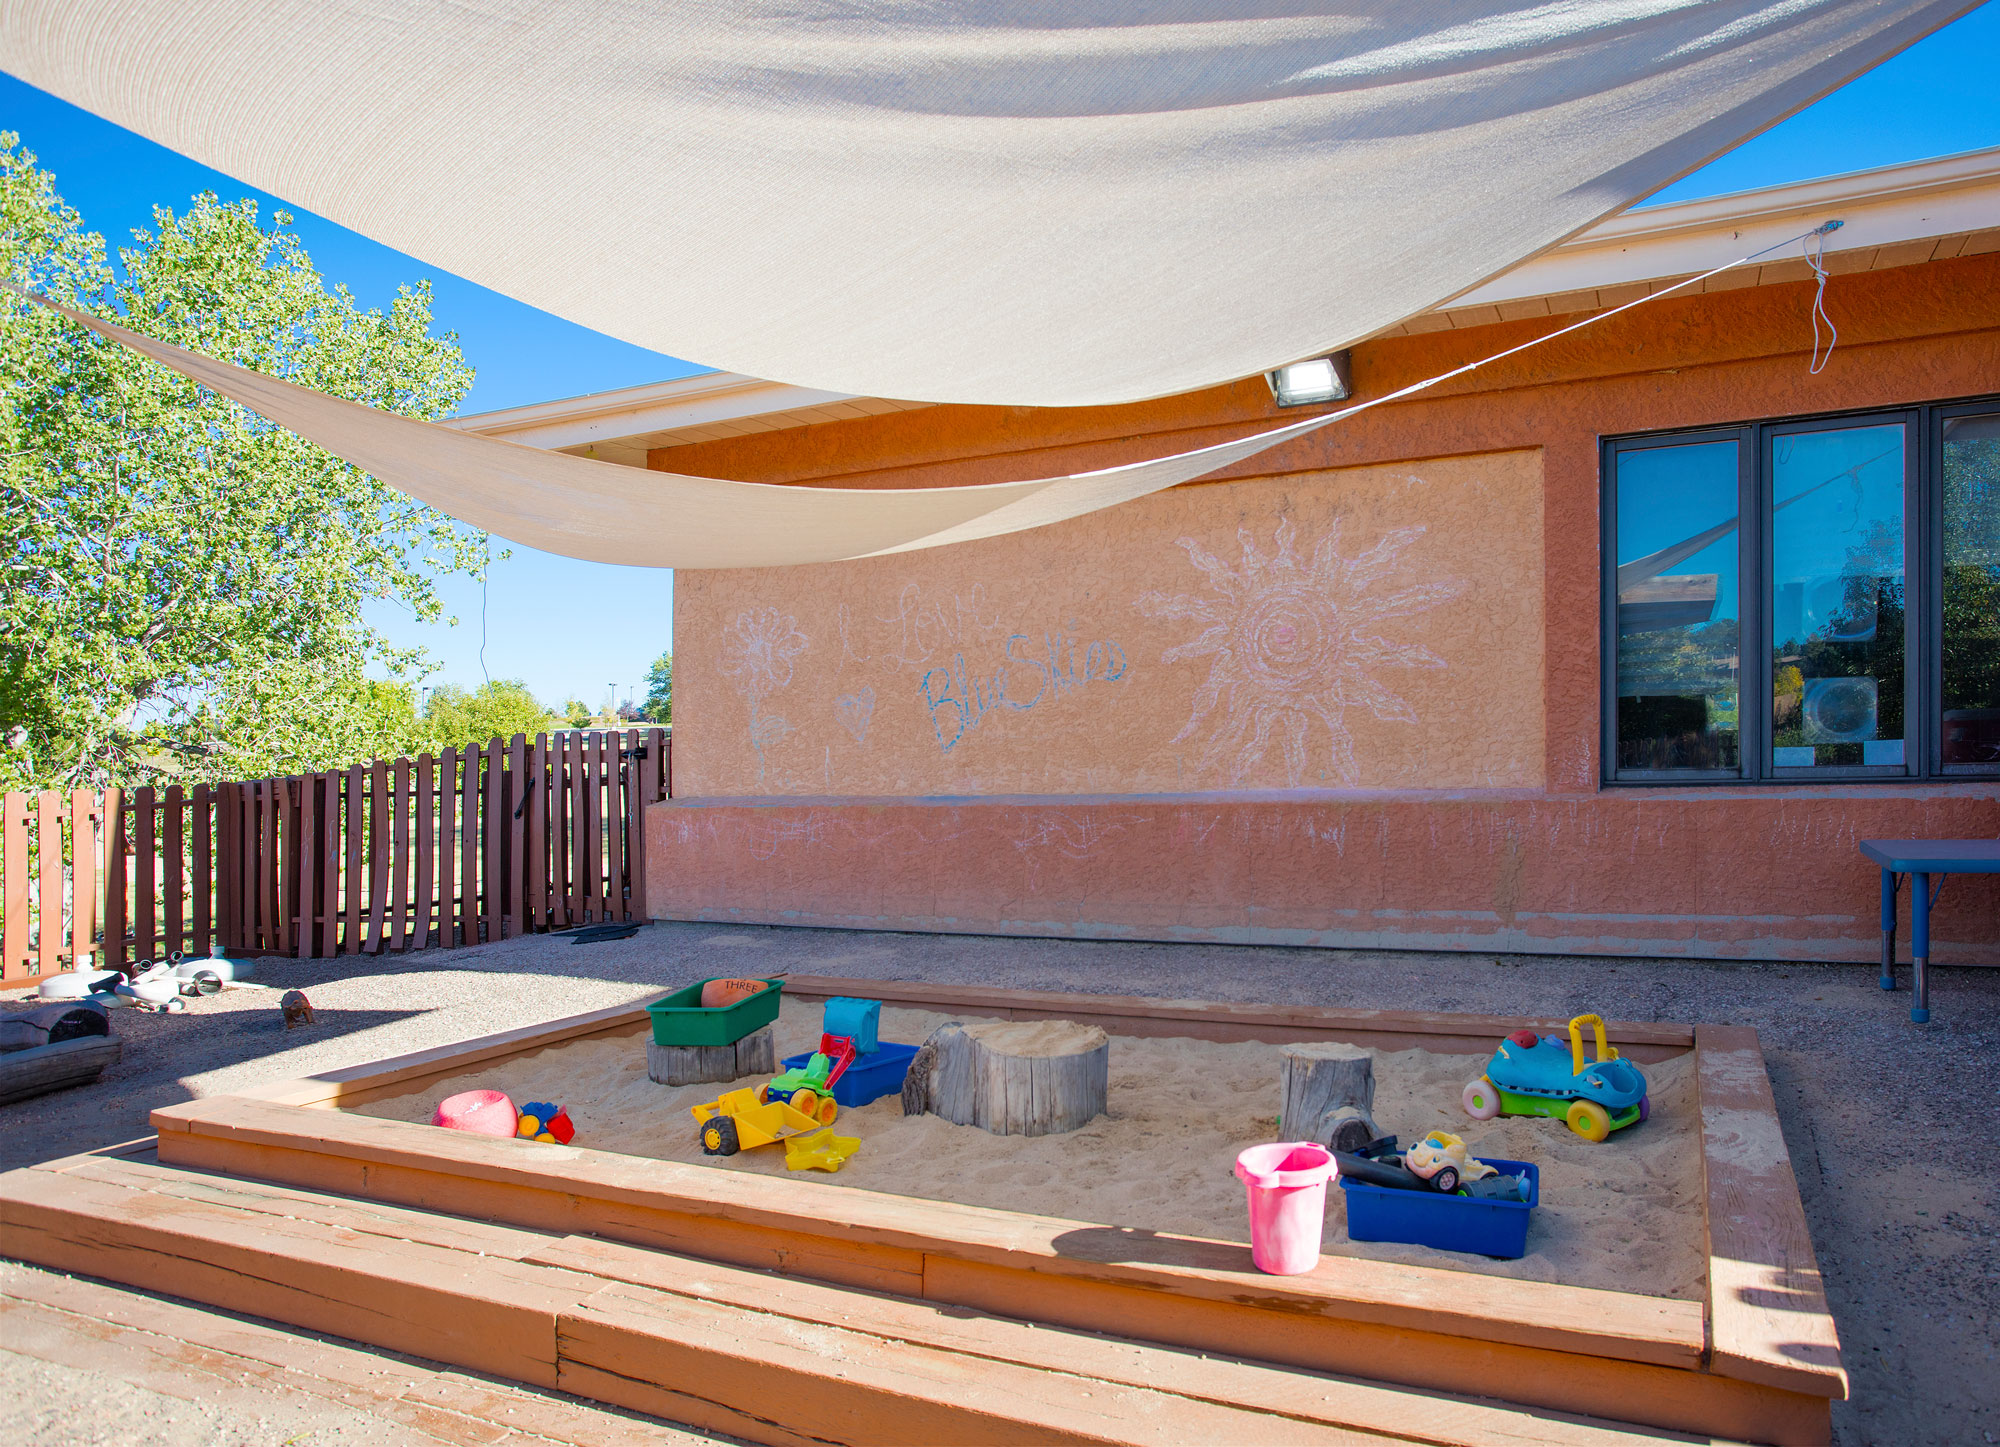 Image of sandbox with toys outside of the learning center.